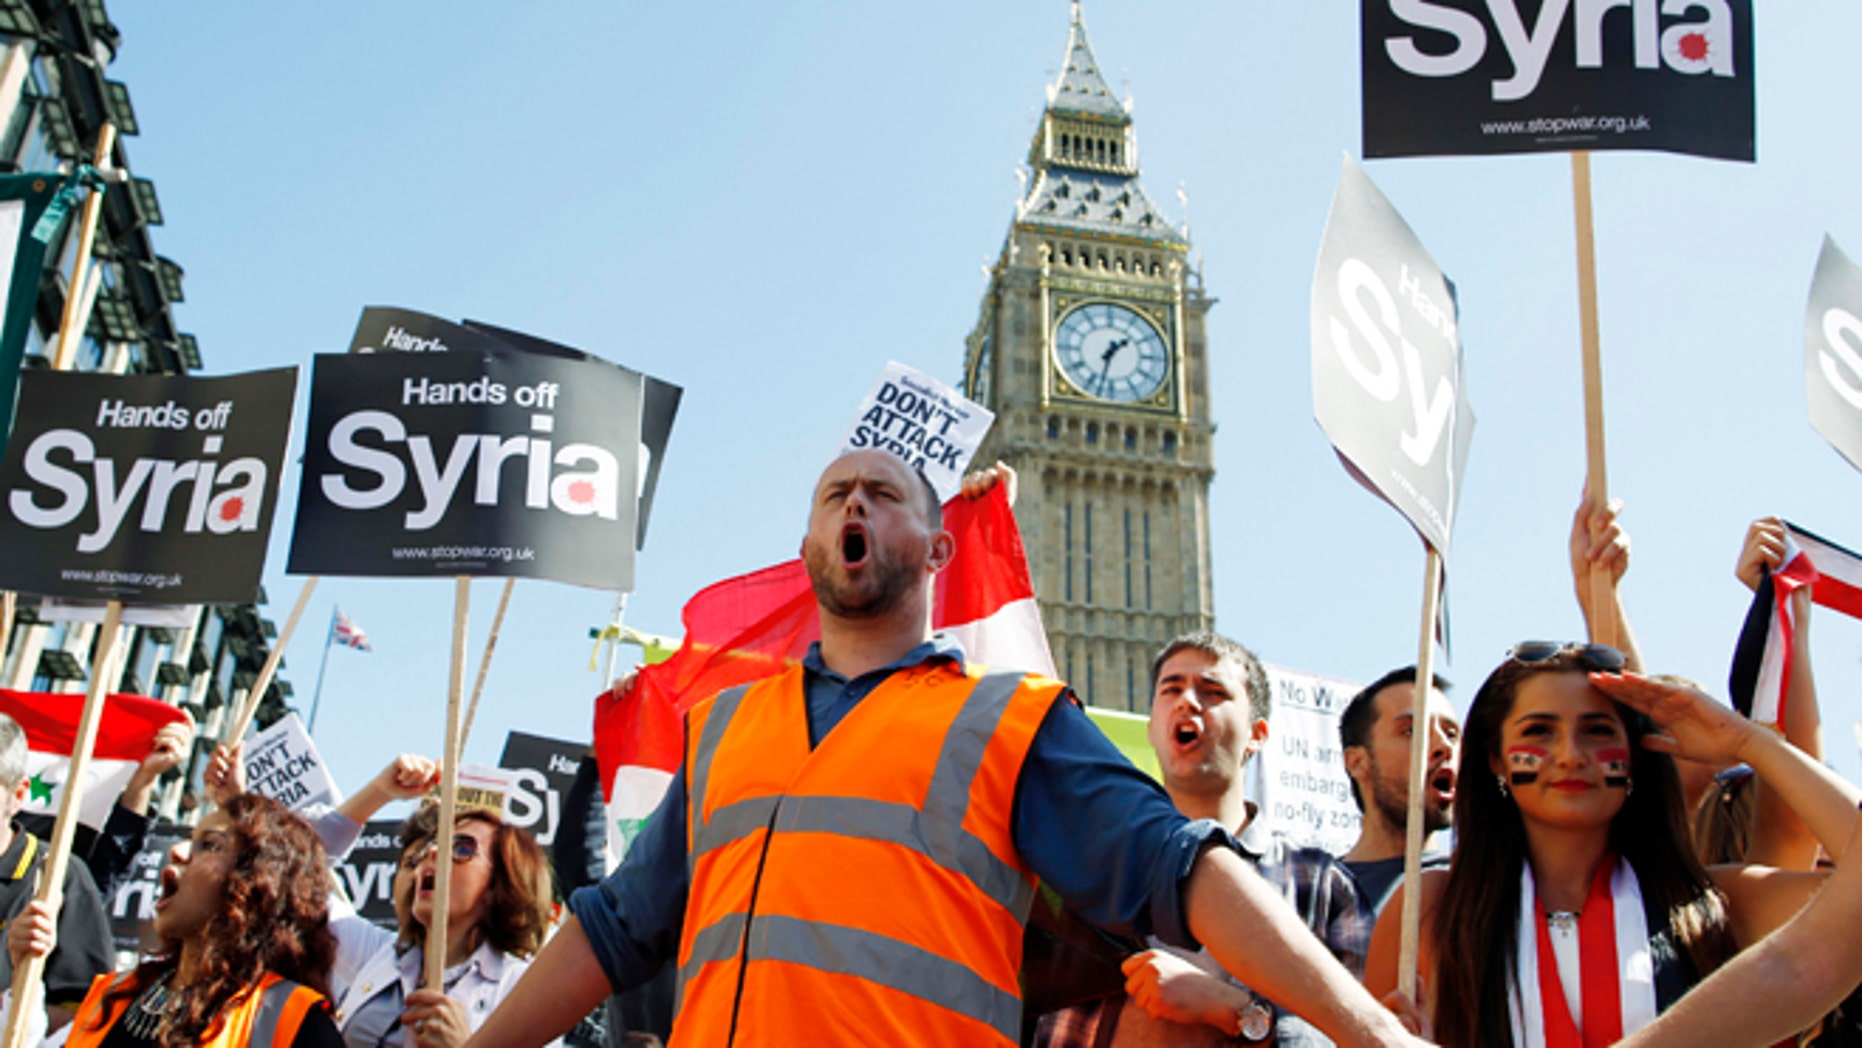 FILE: Aug. 31, 2013: Protesters demonstrate against potential strikes on the Syrian government at Parliament Square in central London.